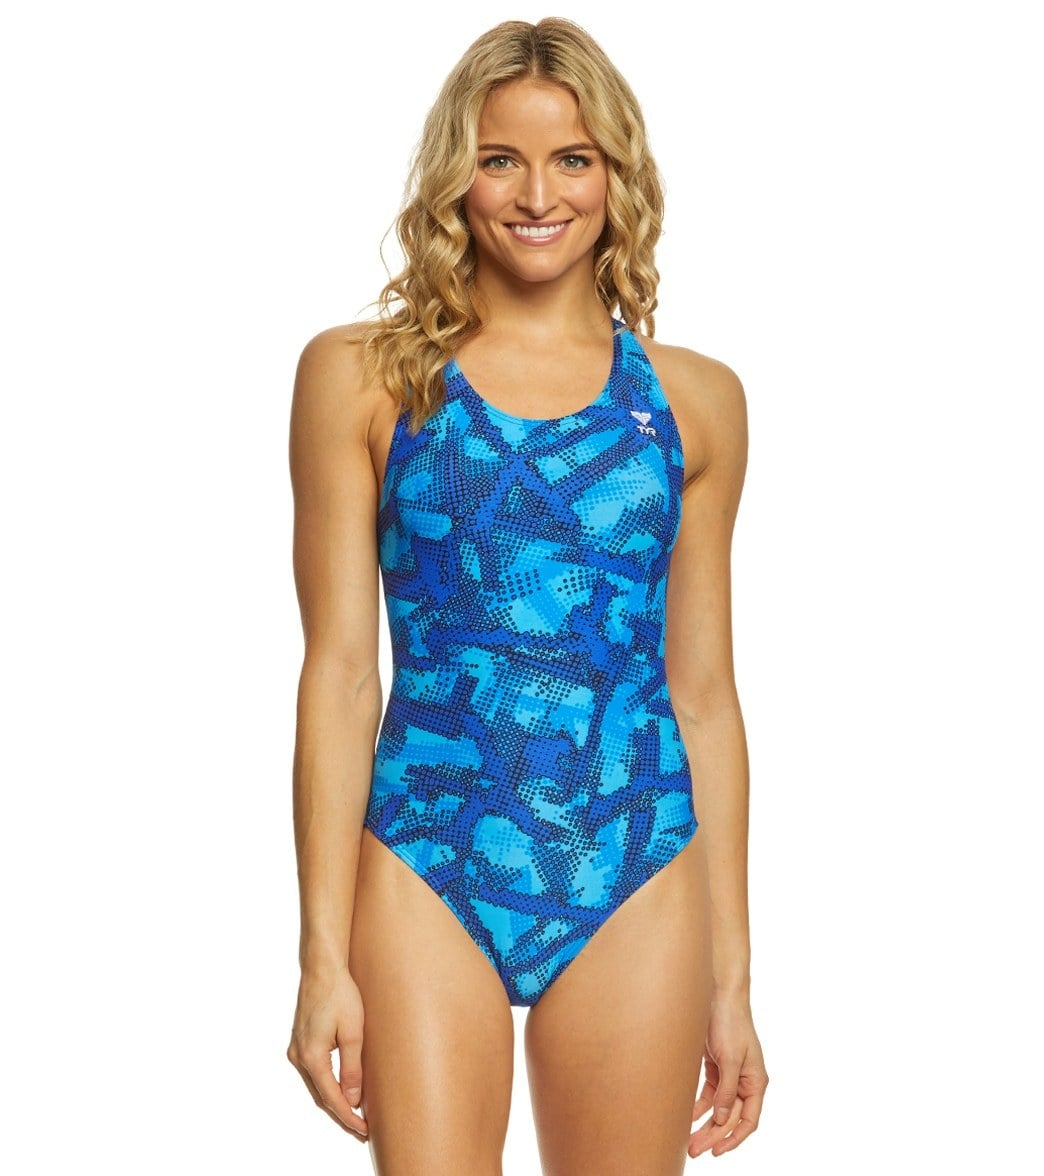 71c9d68bb81 TYR Women s Vesuvius Maxfit One Piece Swimsuit at SwimOutlet.com - Free  Shipping